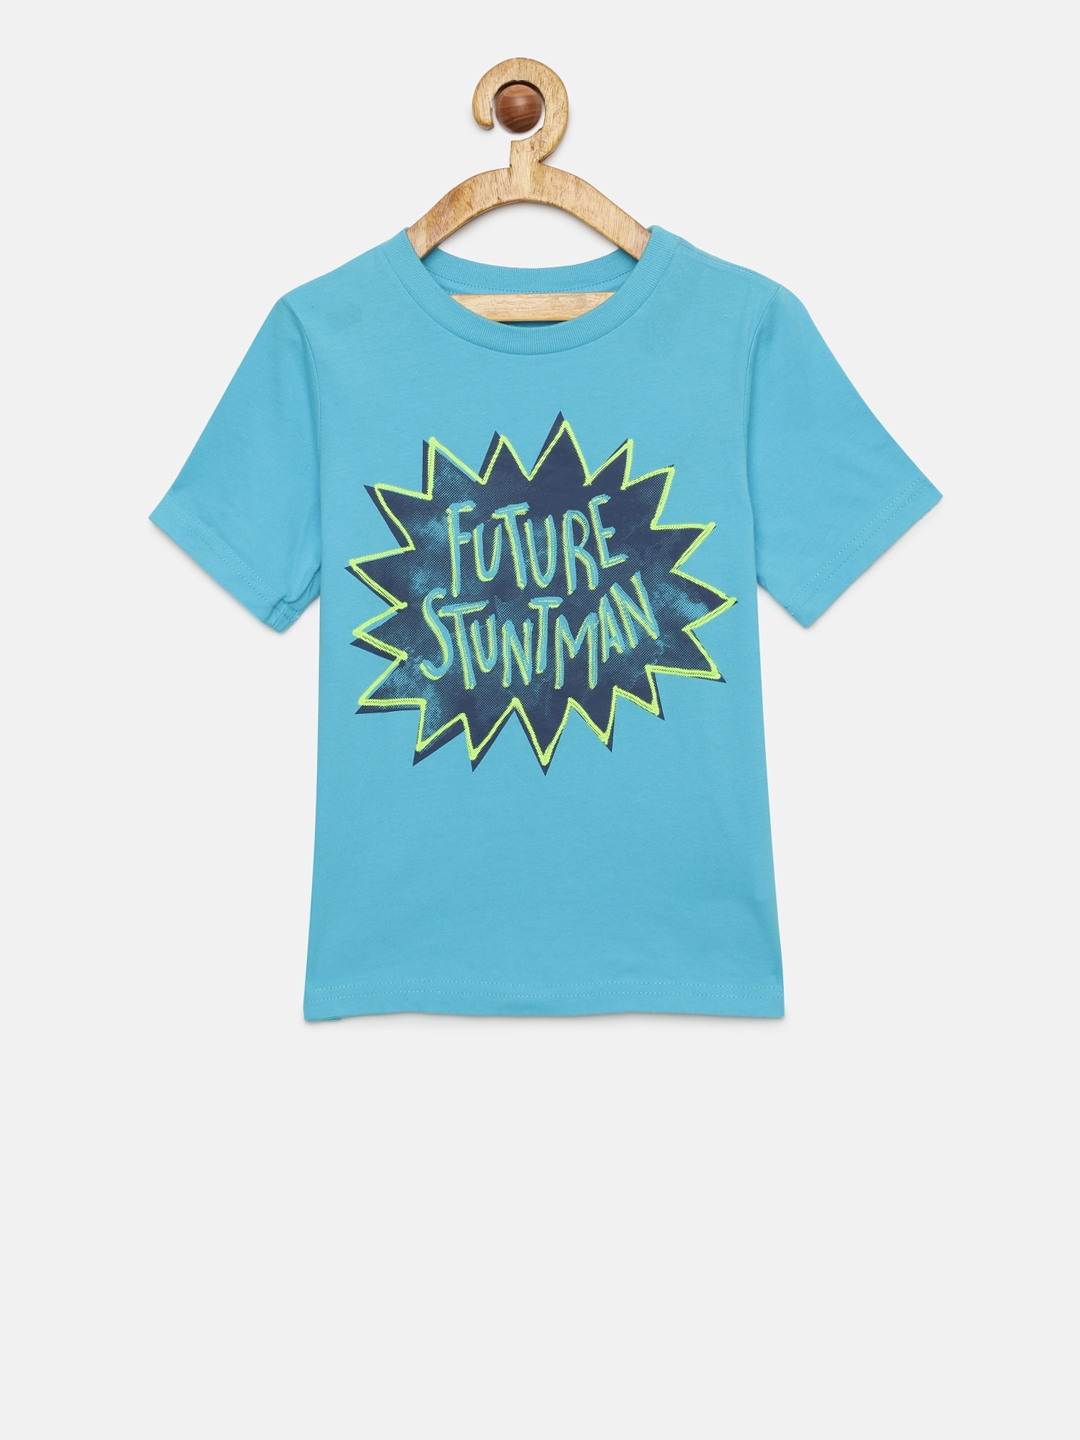 3fef64a7 Buy The Childrens Place Boys Blue Printed Round Neck T Shirt ...